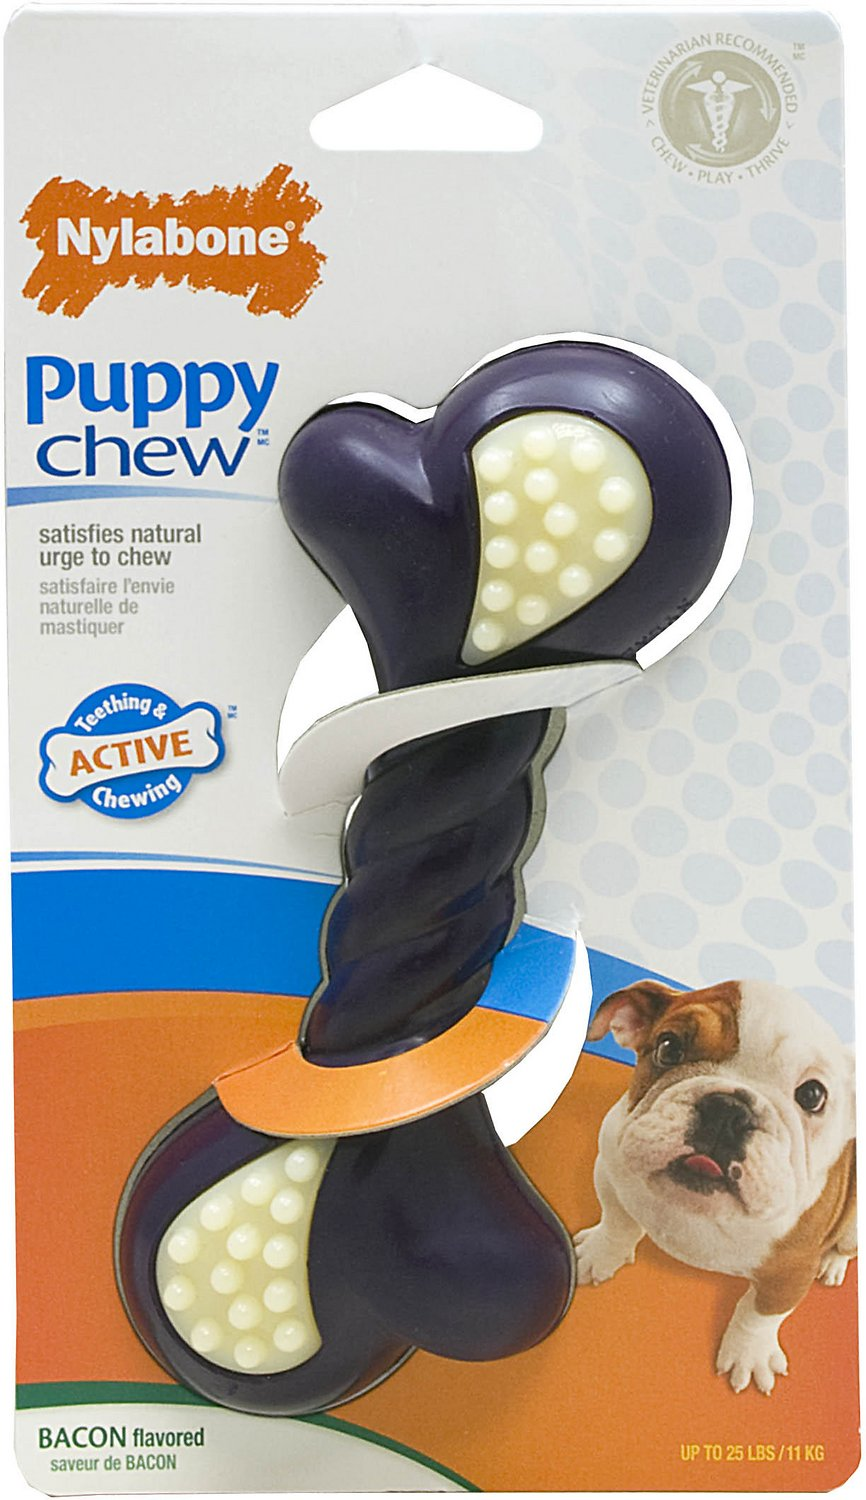 Nylabone Puppy Chew Double Action Bacon Flavor Dog Toy Image